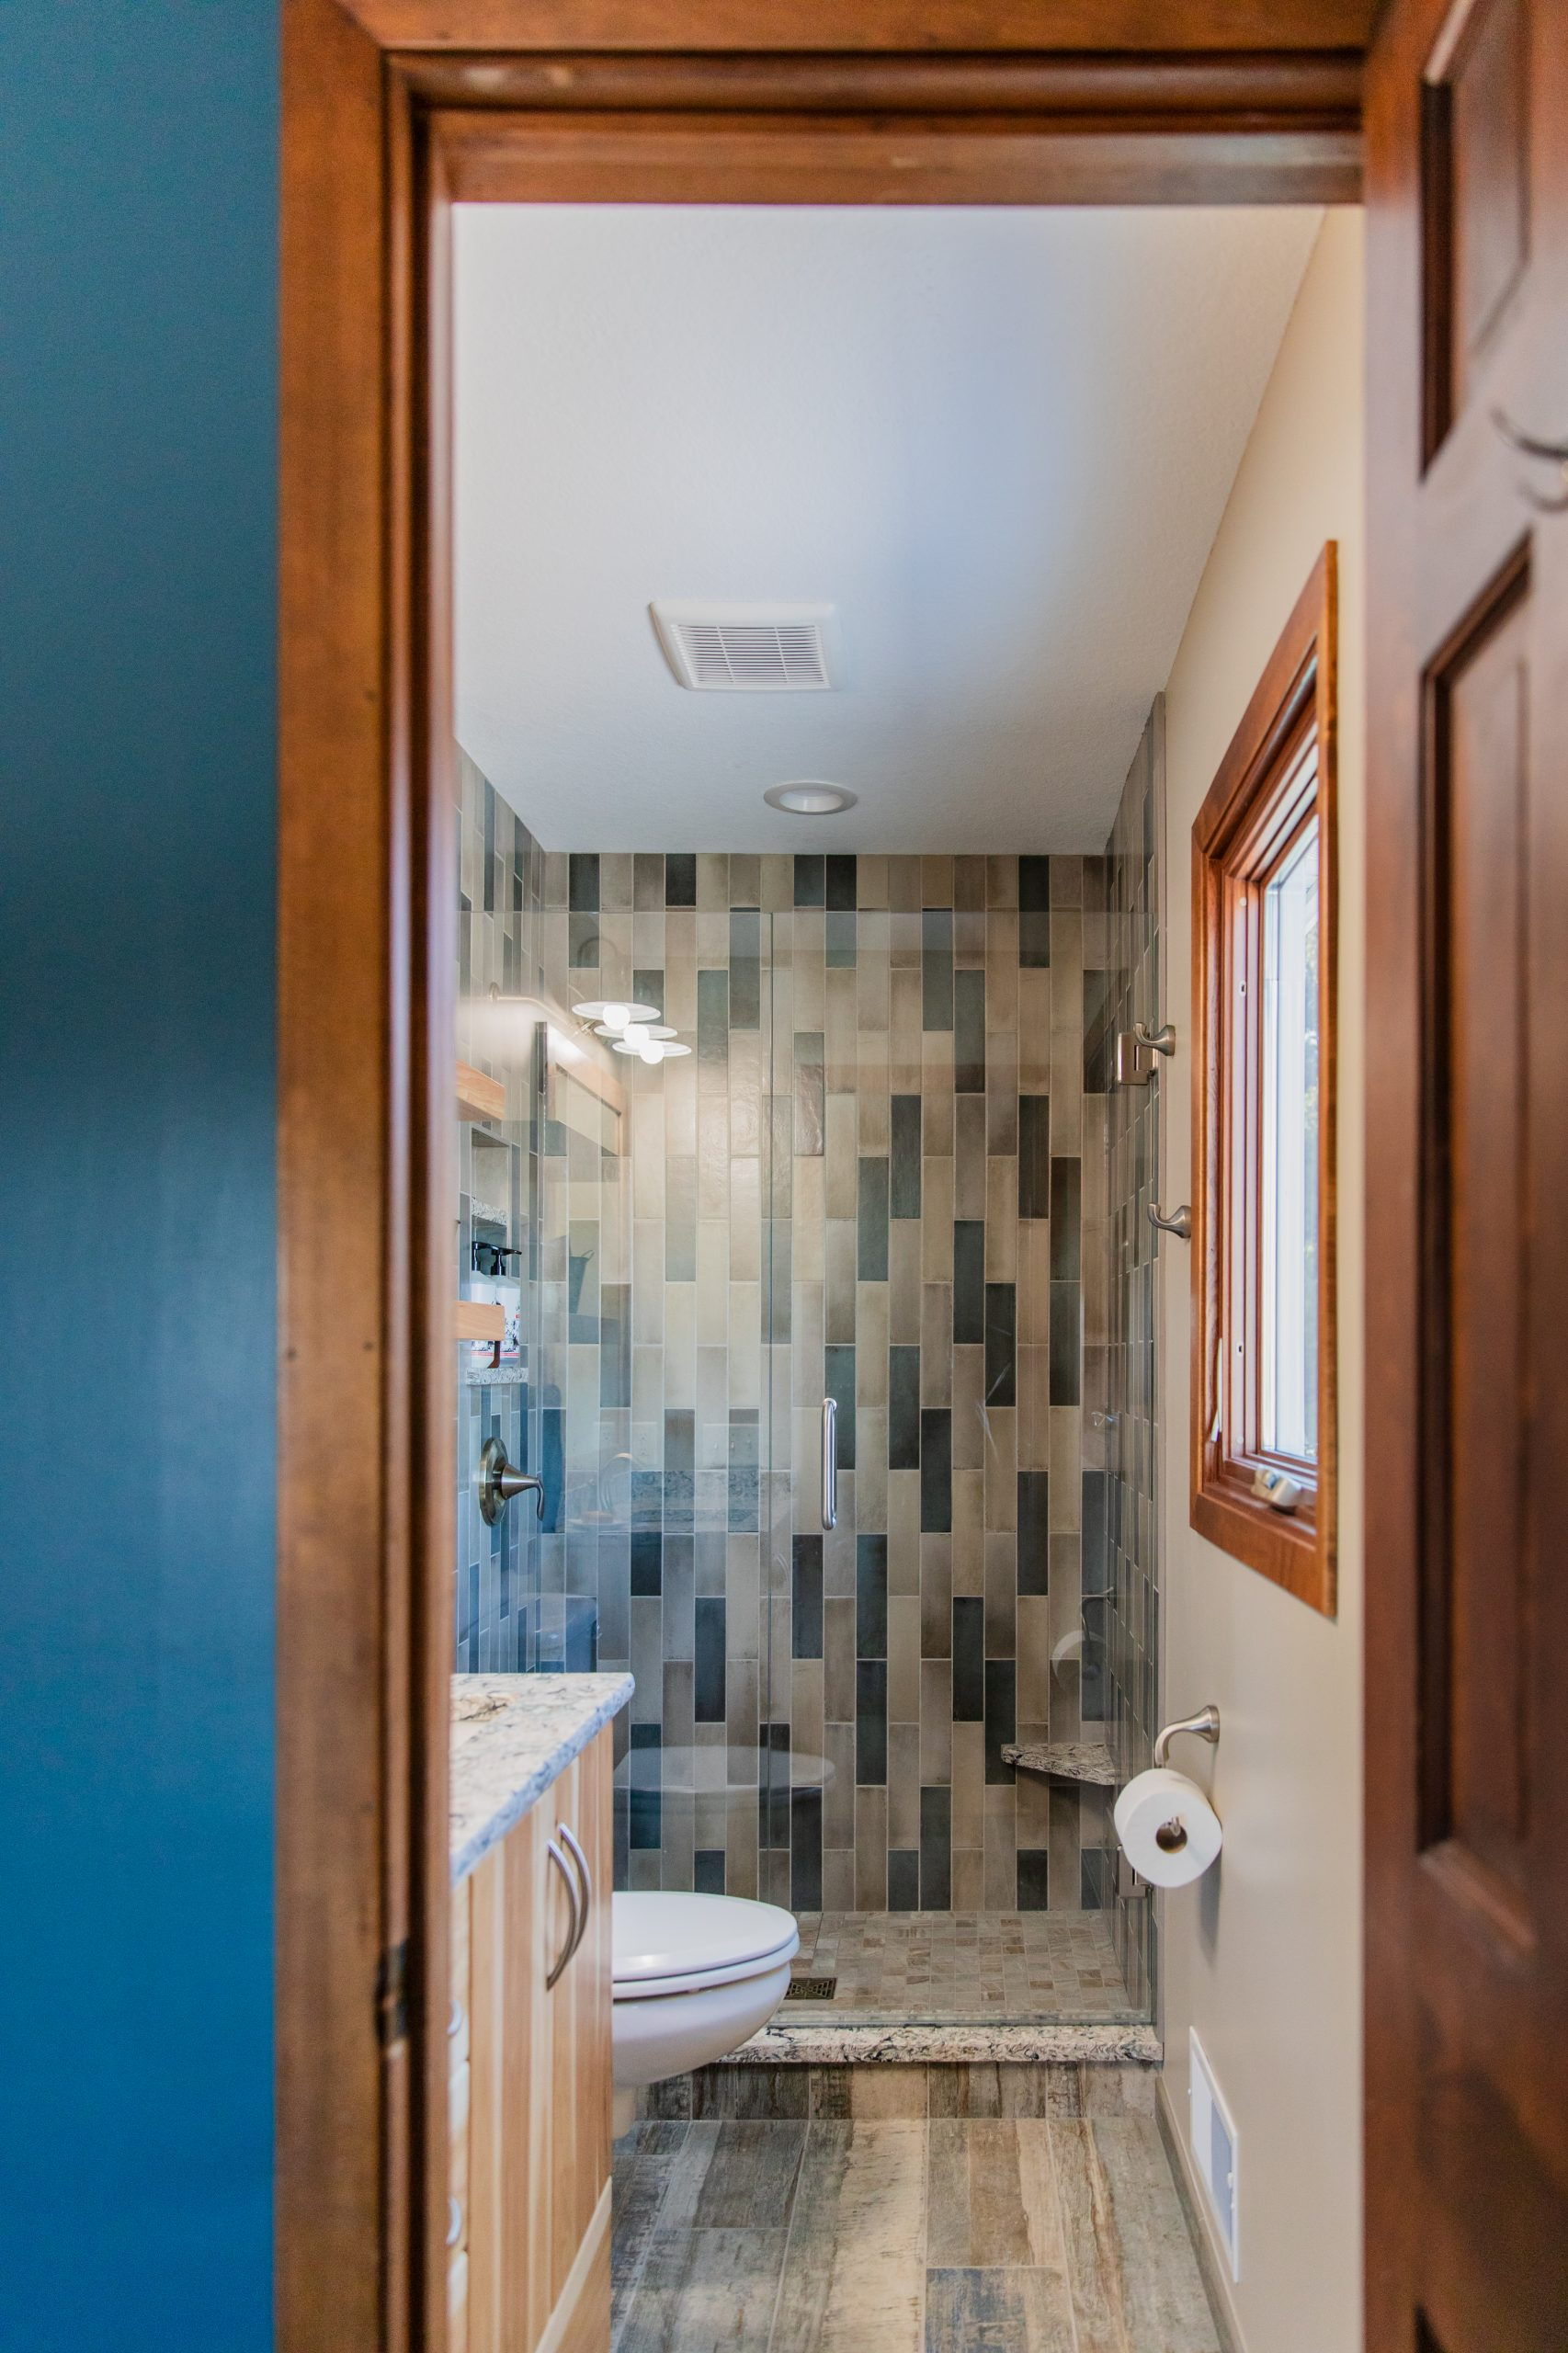 Sanner Tiled Showers